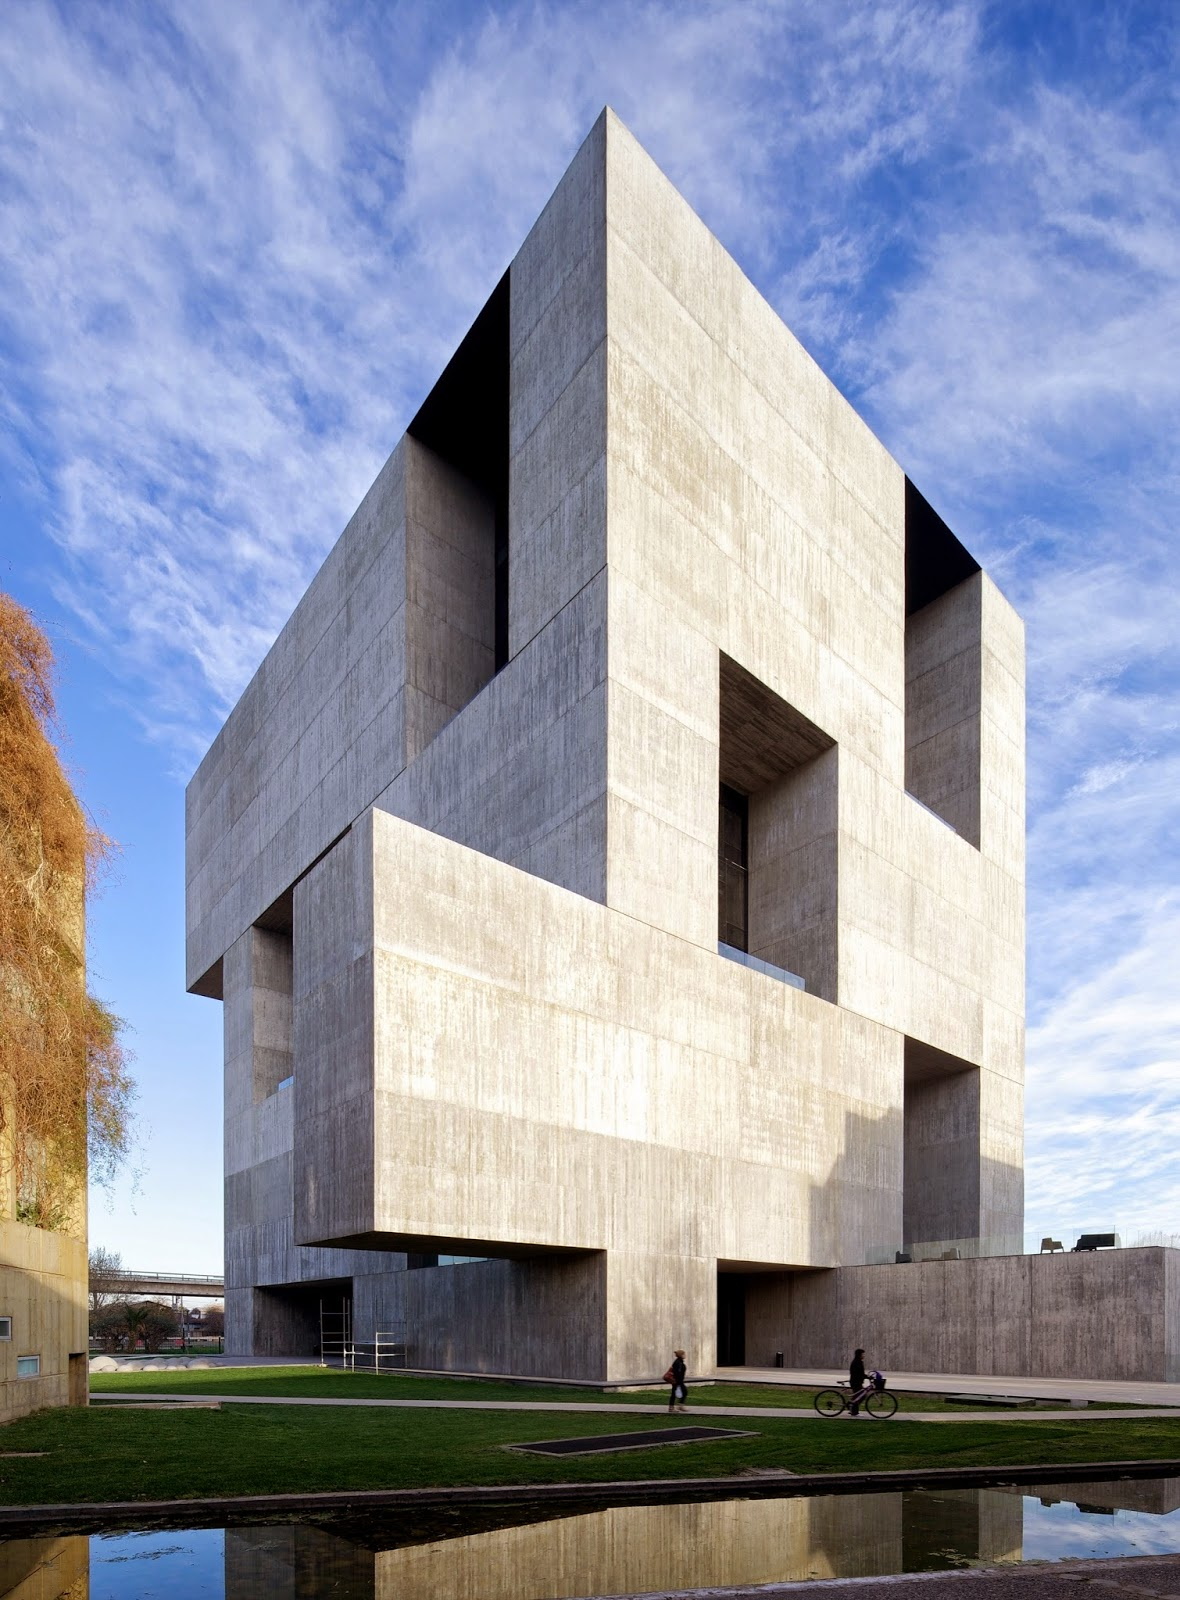 Void architecture pictures to pin on pinterest pinsdaddy - Void Architecture Pictures To Pin On Pinterest Pinsdaddy 1180x1600